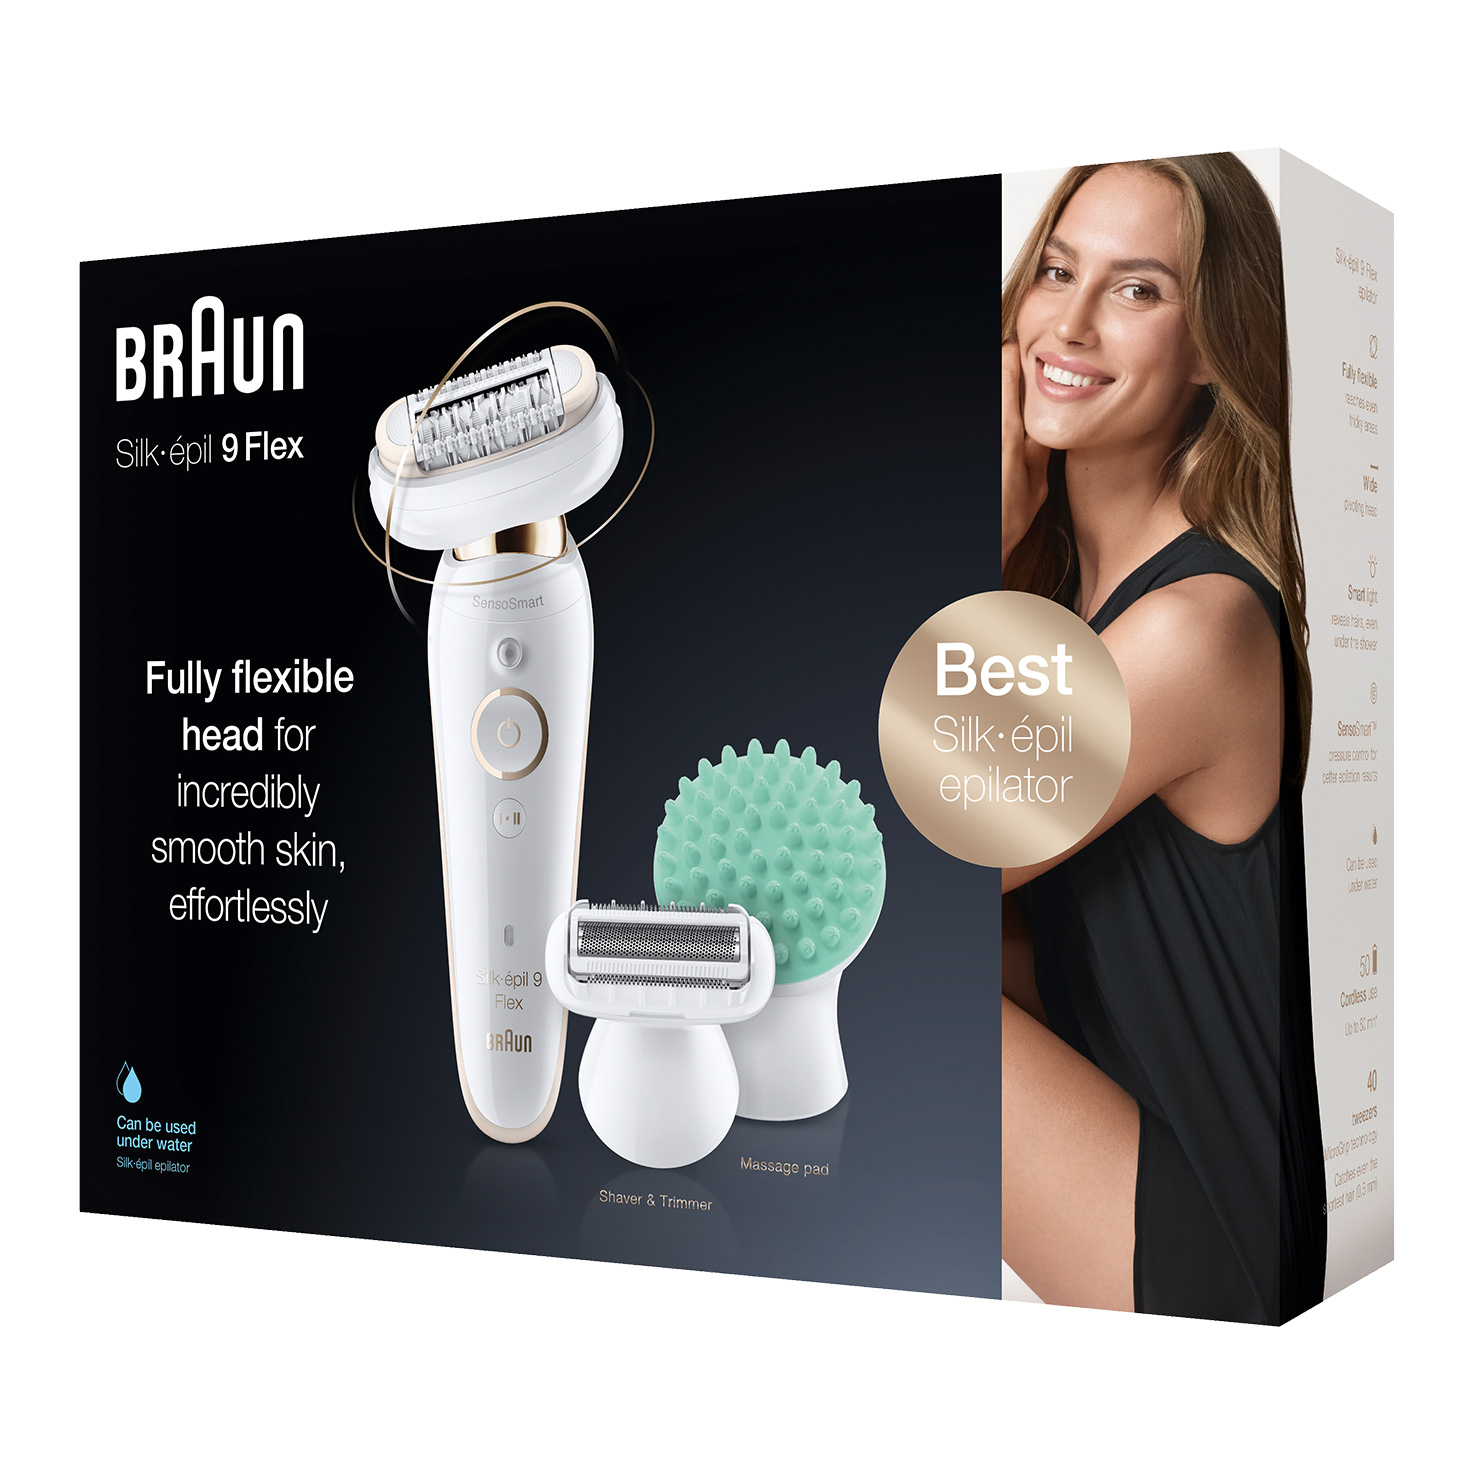 Silk-épil 9 Flex 9-020 epilator